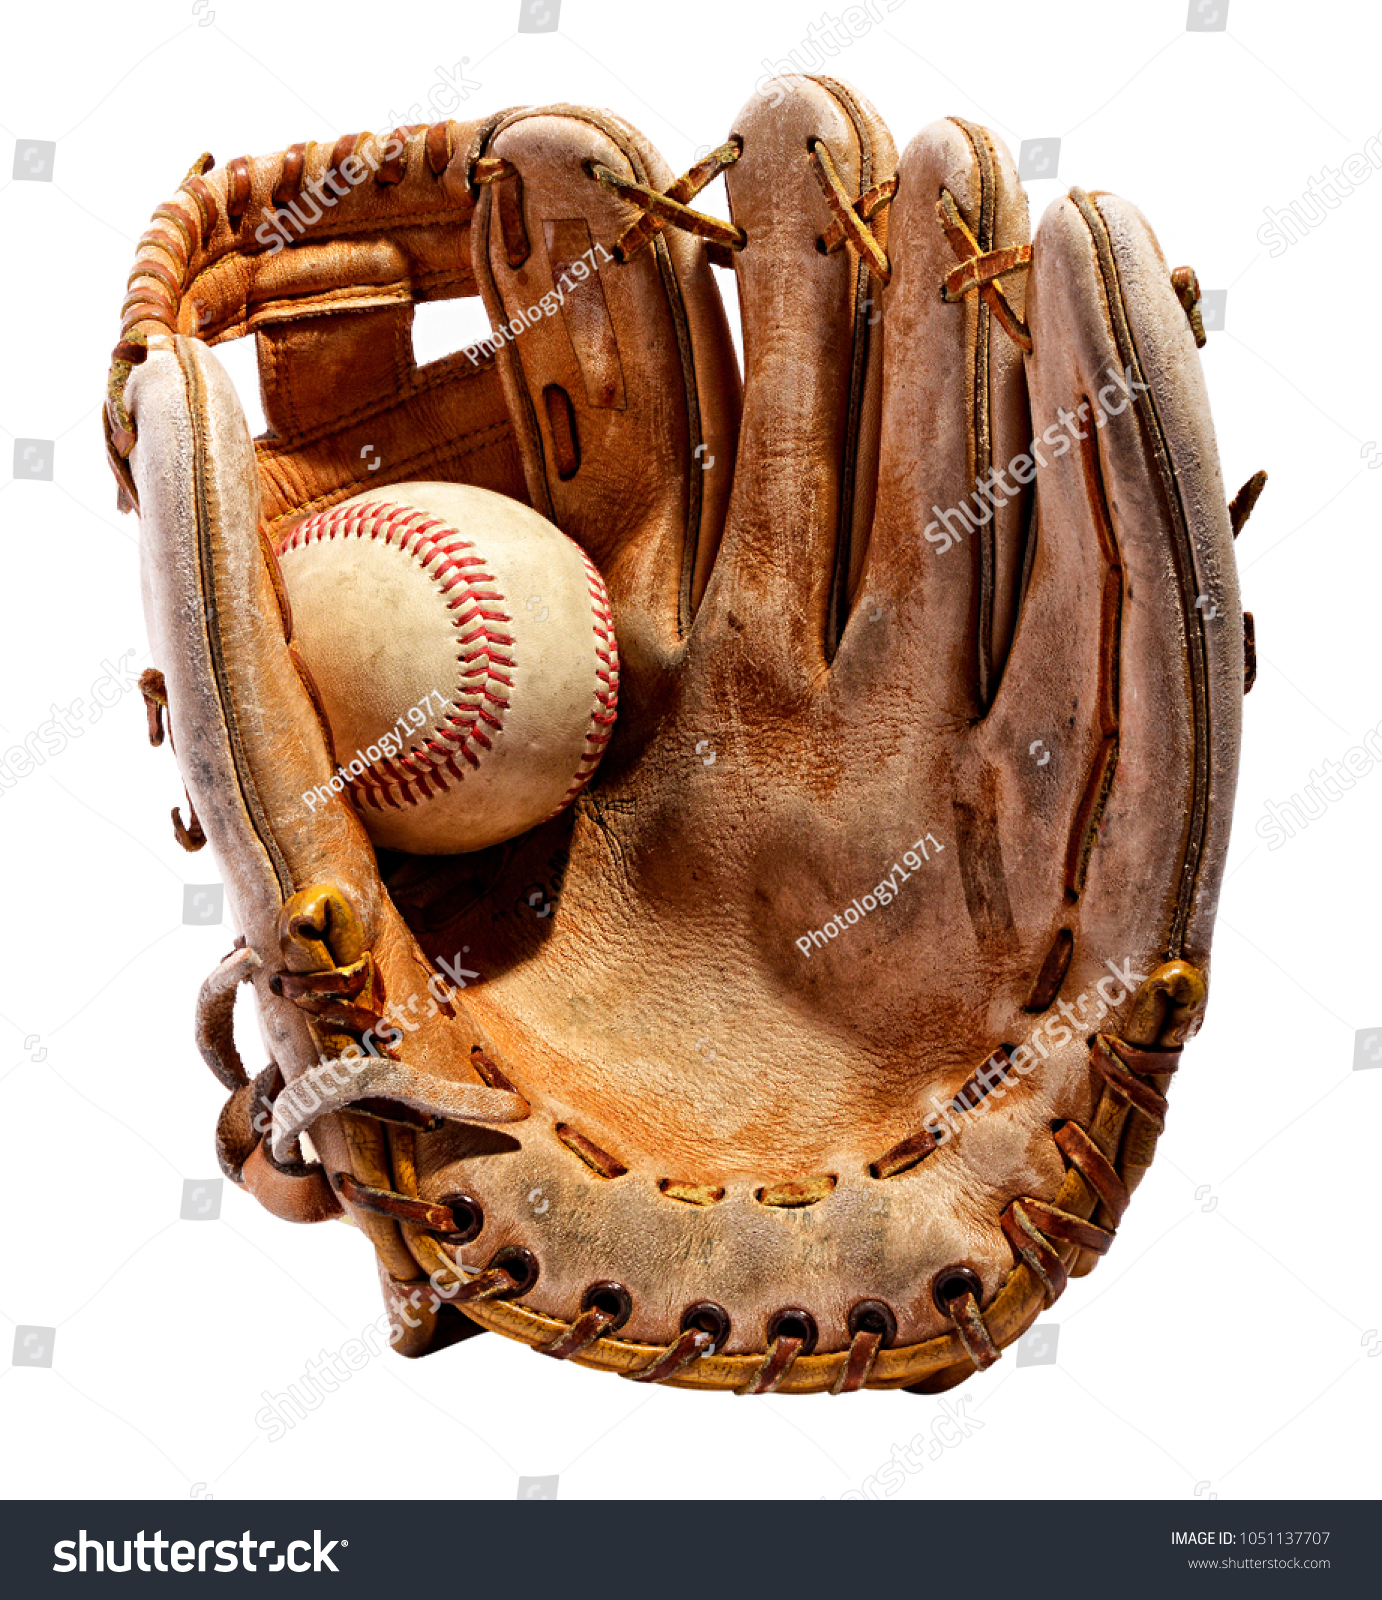 Vintage classic leather baseball glove from the palm side with the ball in it in close-up isolated on white background #1051137707